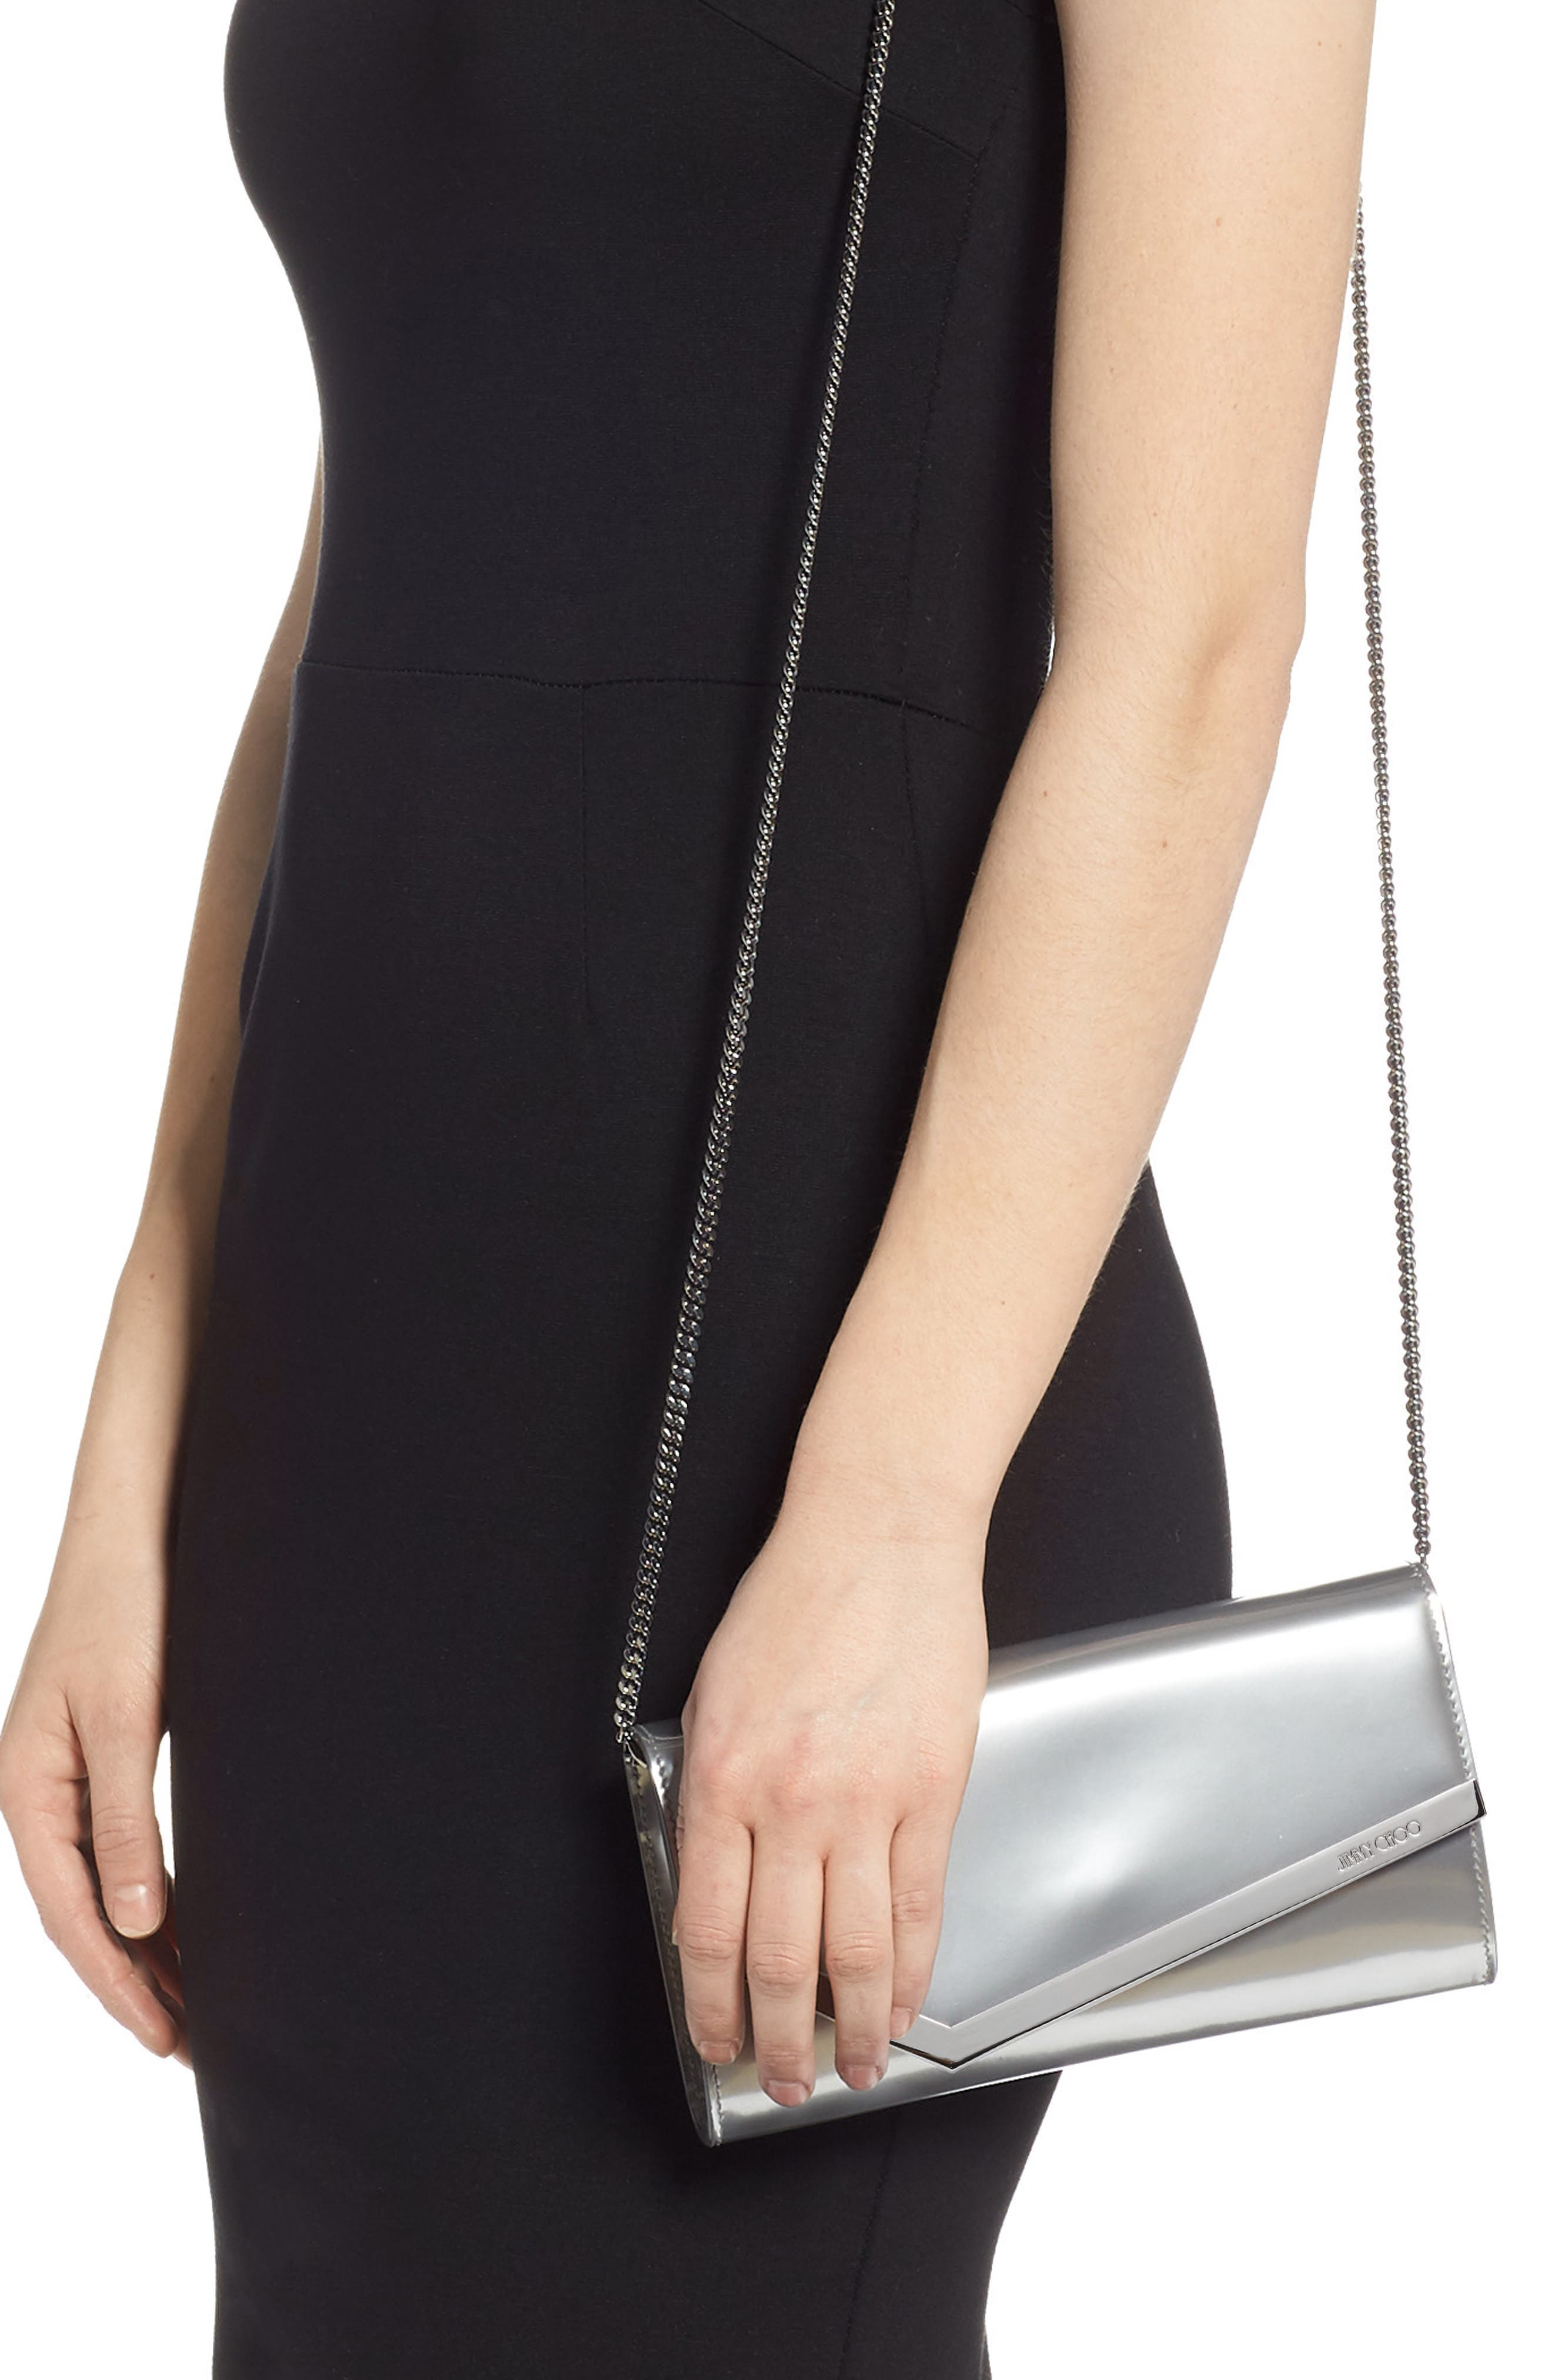 JIMMY CHOO, Emmie Metallic Leather Clutch, Alternate thumbnail 2, color, SILVER